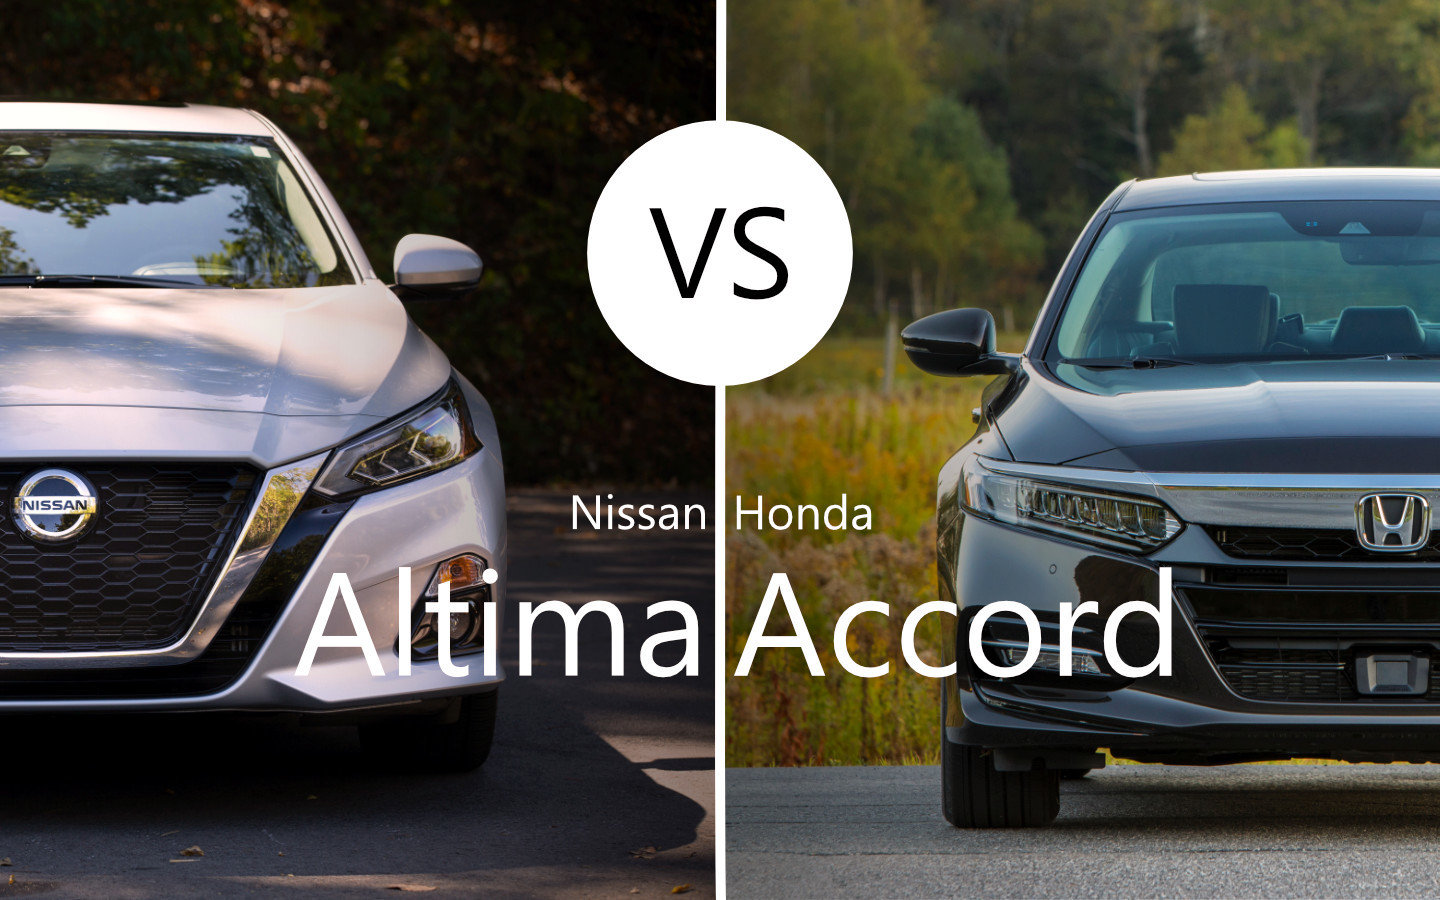 2020 nissan altima vs 2020 honda accord